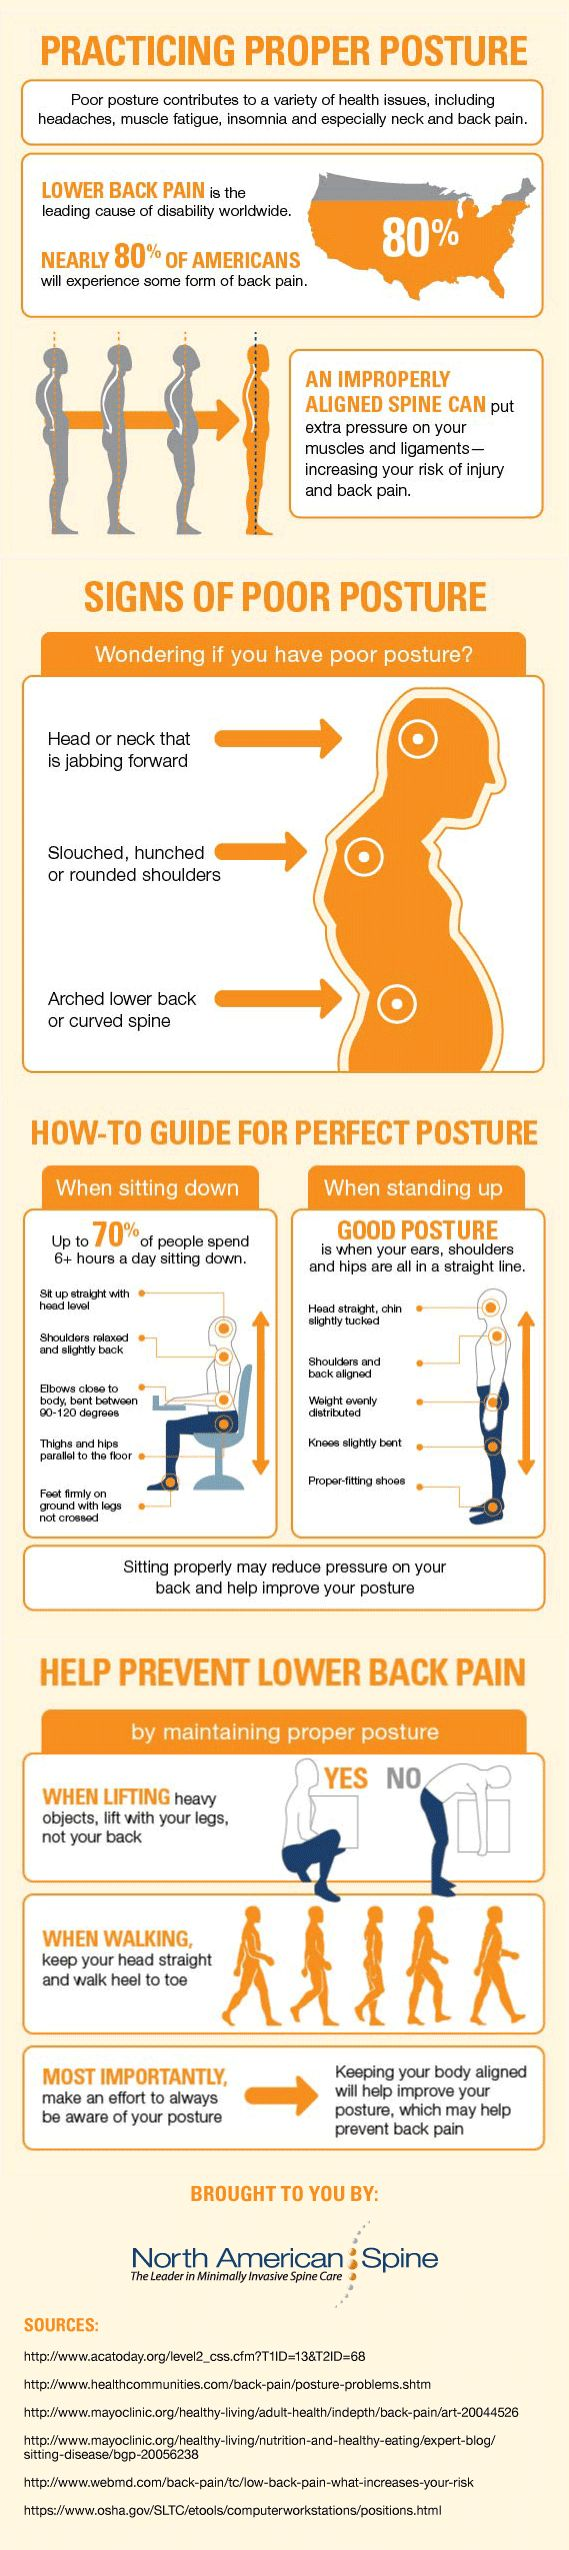 Practicing Proper Posture Infographic - Poor posture not only affects the way you look, it can lead to harmful health problems such as headaches, tension, soreness, insomnia and even neck and #back pain. Then, straighten up your back with this how-to guide for perfect #posture and best practices to prevent lower back pain